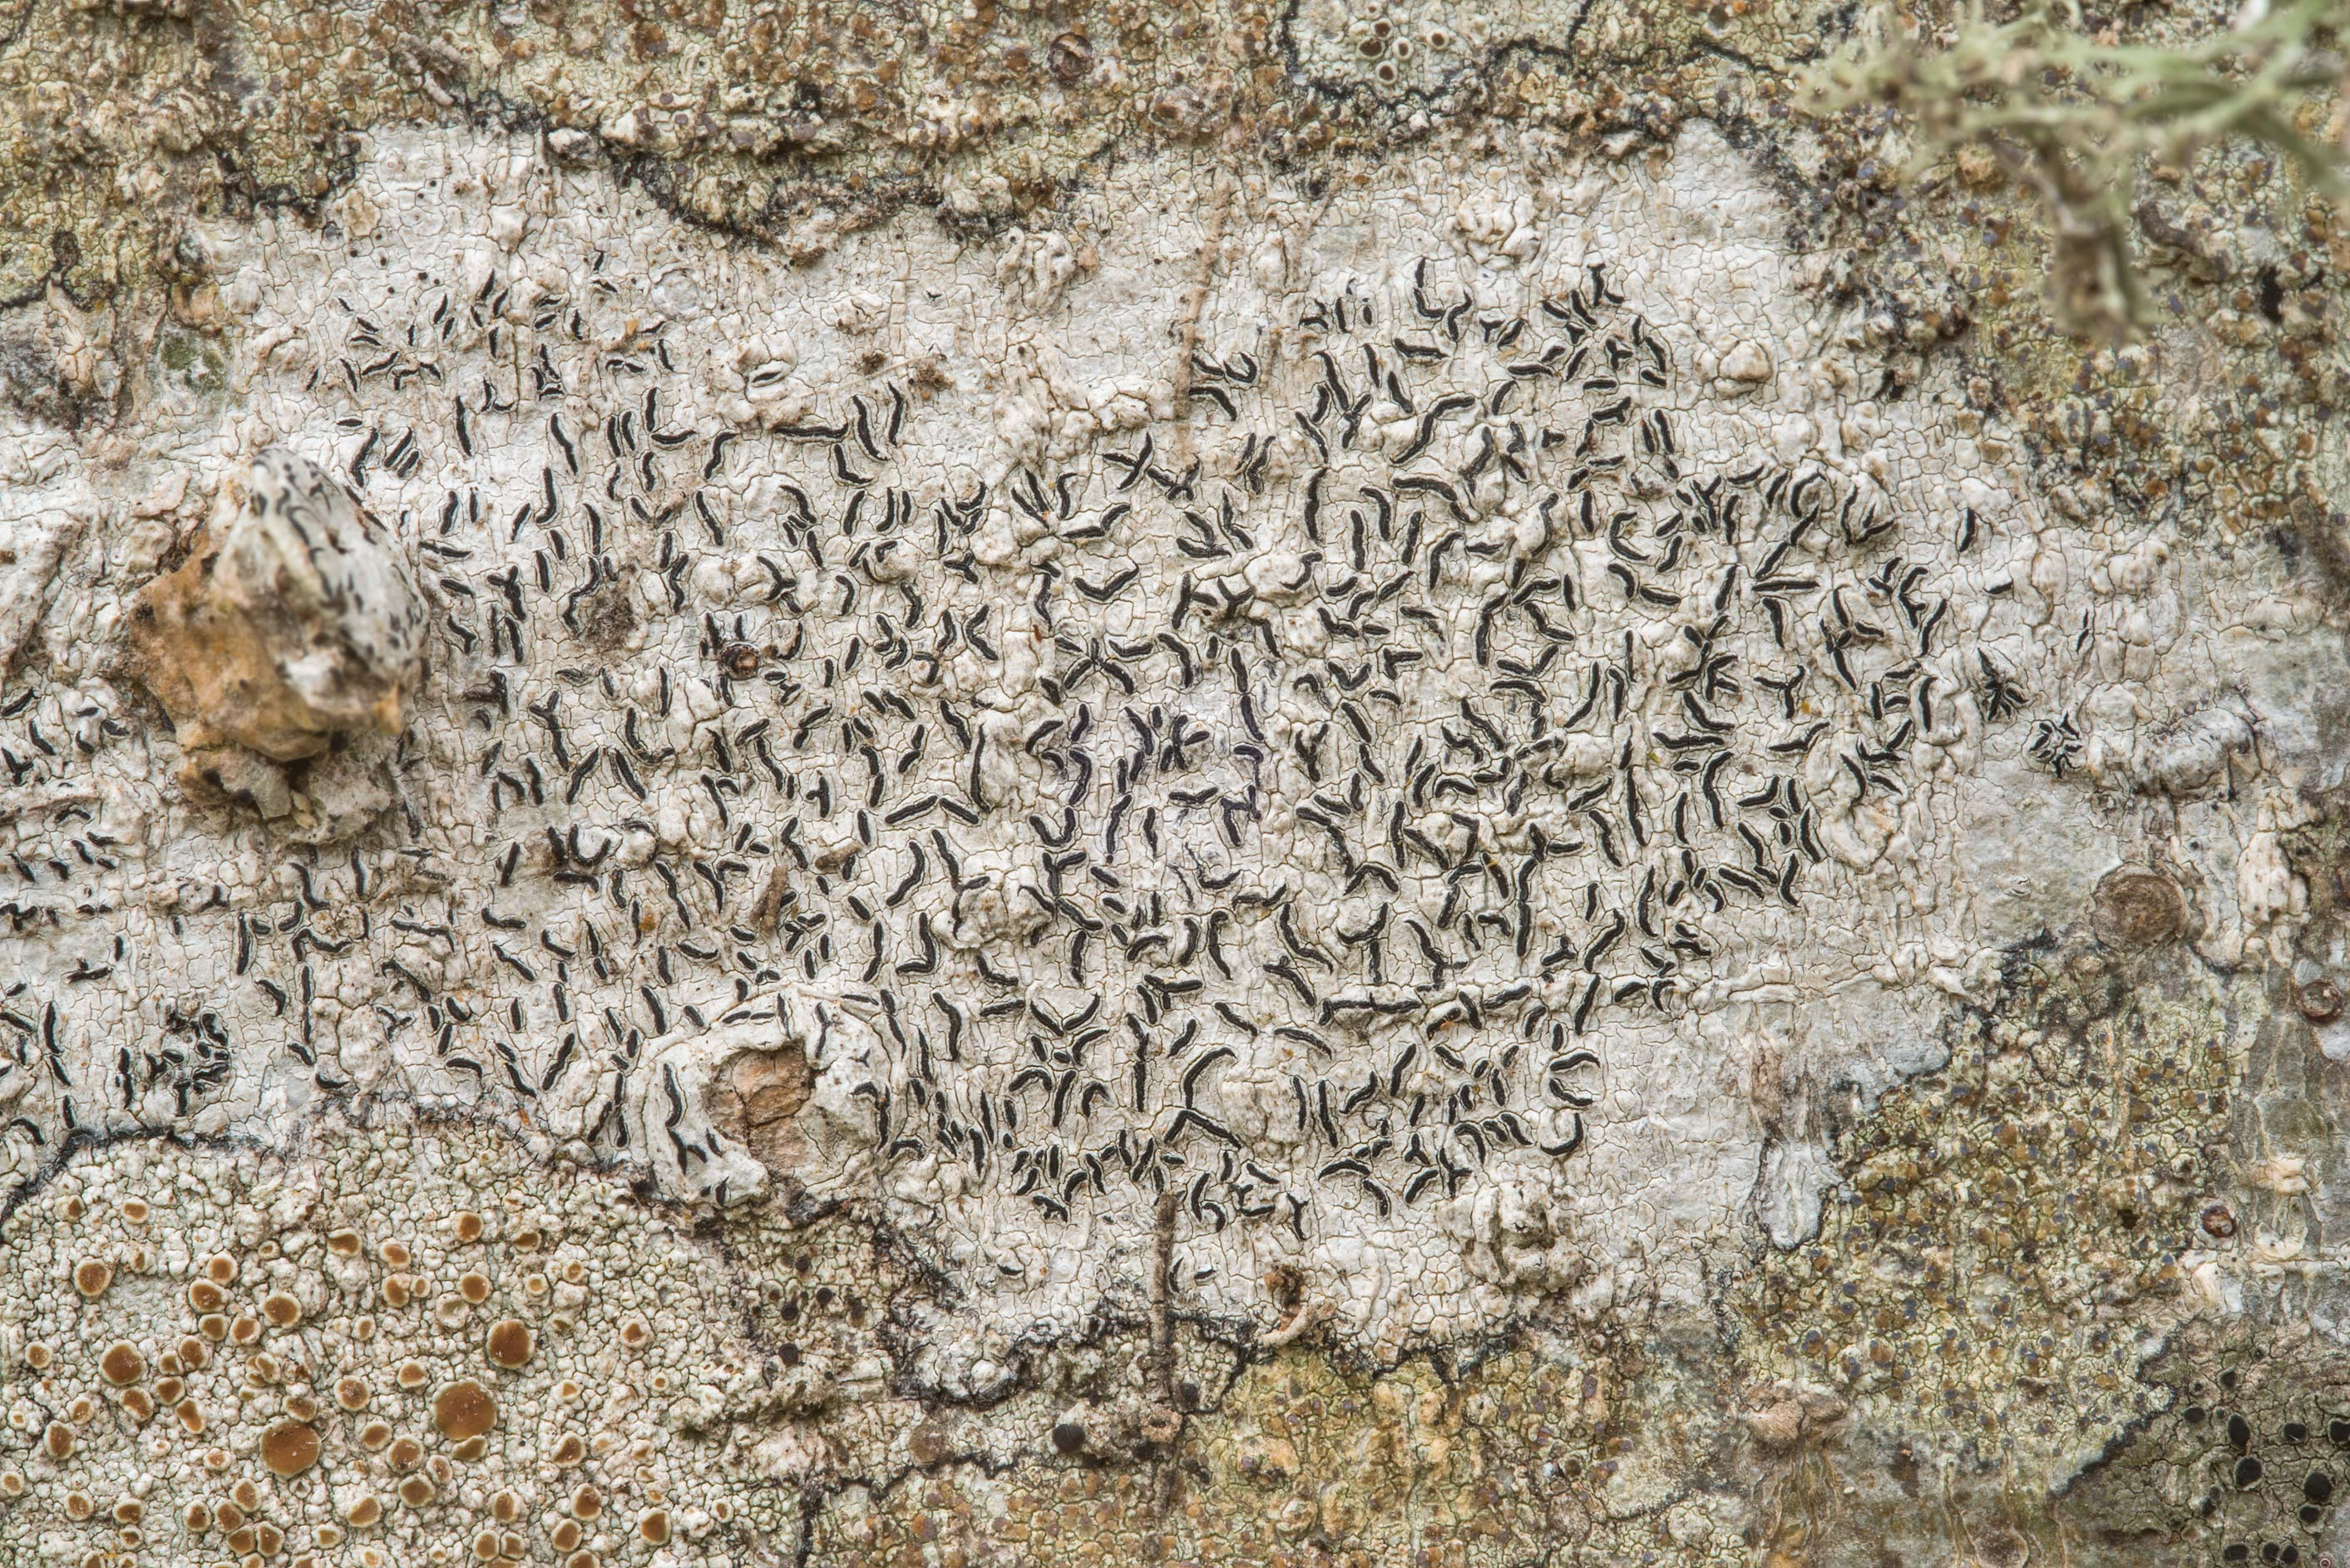 Script lichen Graphis lineola on bark of a...State Historic Site. Washington, Texas